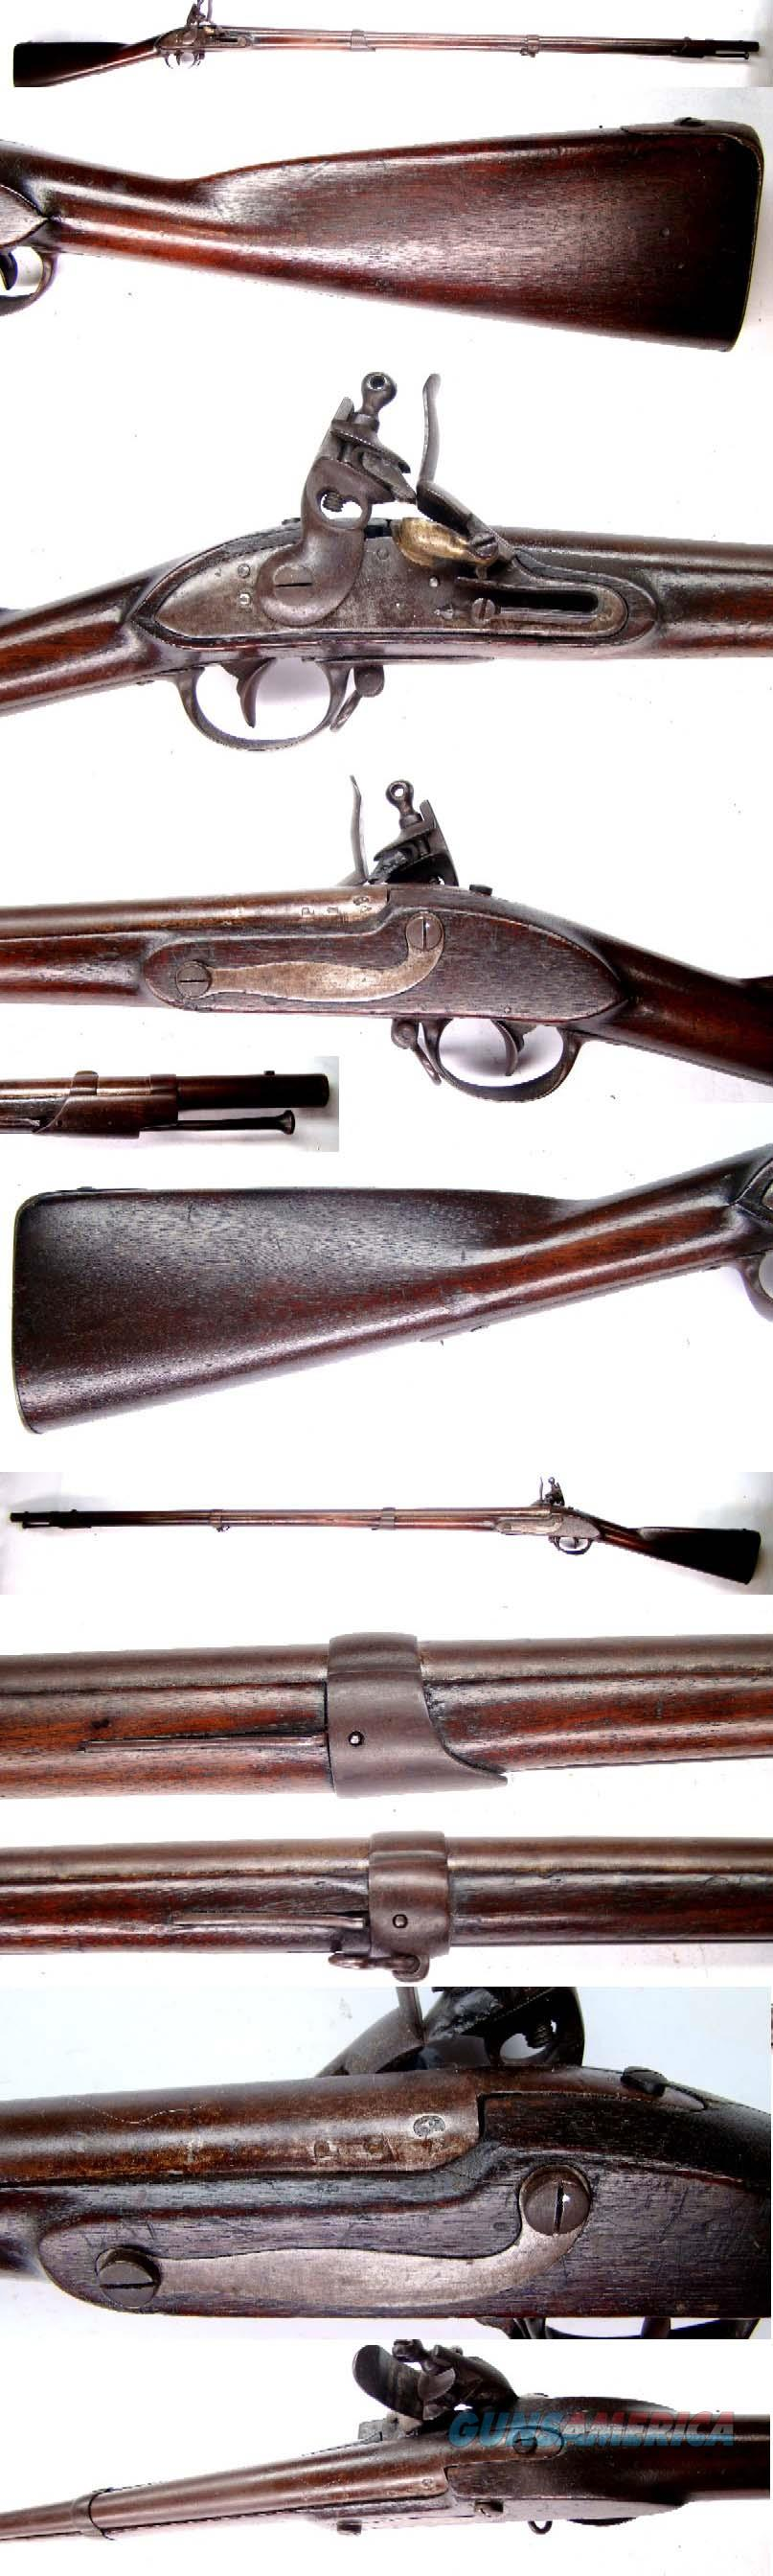 Flintlock NY State Militia Musket  Guns > Rifles > Antique (Pre-1899) Rifles - Flintlock Misc